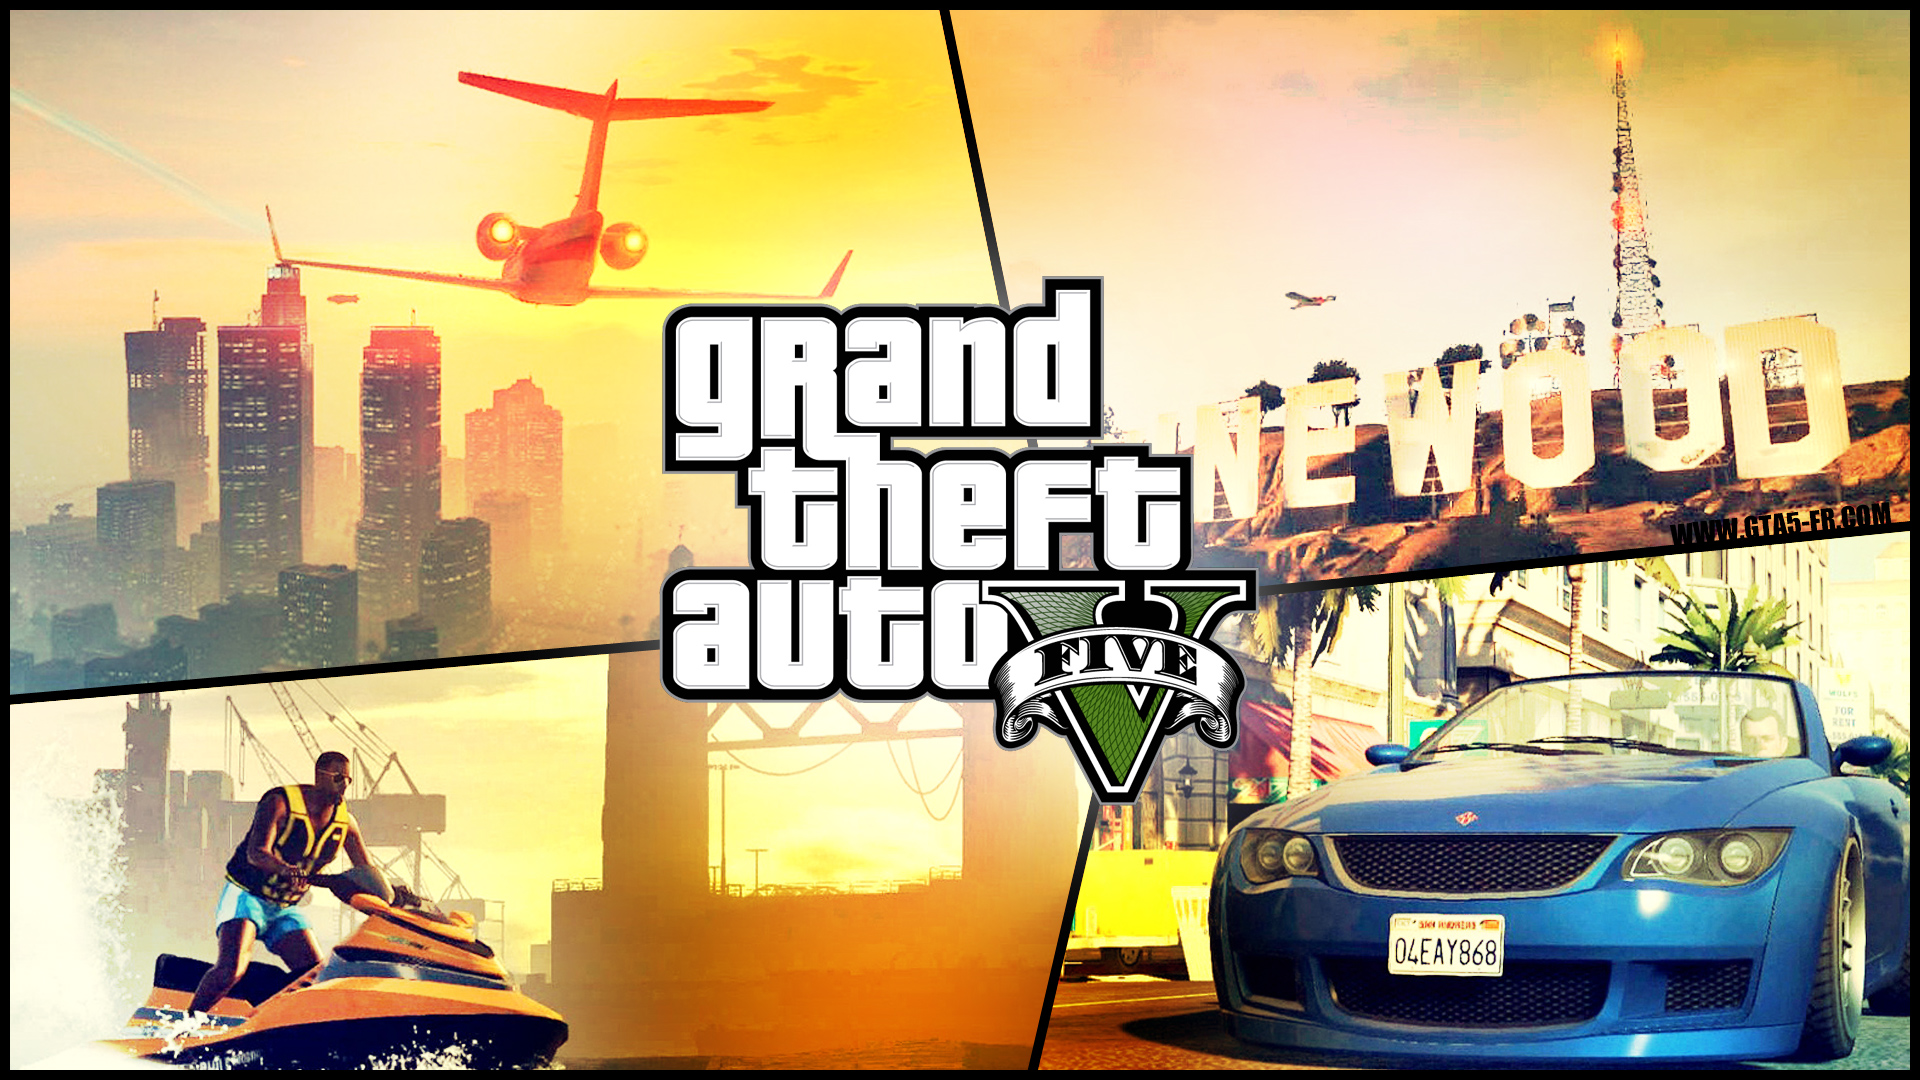 Cheats For Grand Theft Auto Iv Ps3 in addition Gta V Codes And Cheats For The Extremely Lazy likewise Gta Online in addition Watch furthermore Gta 5 Cheats All Cheat Codes icrdn. on have infinite money in grand theft auto 5 gta v